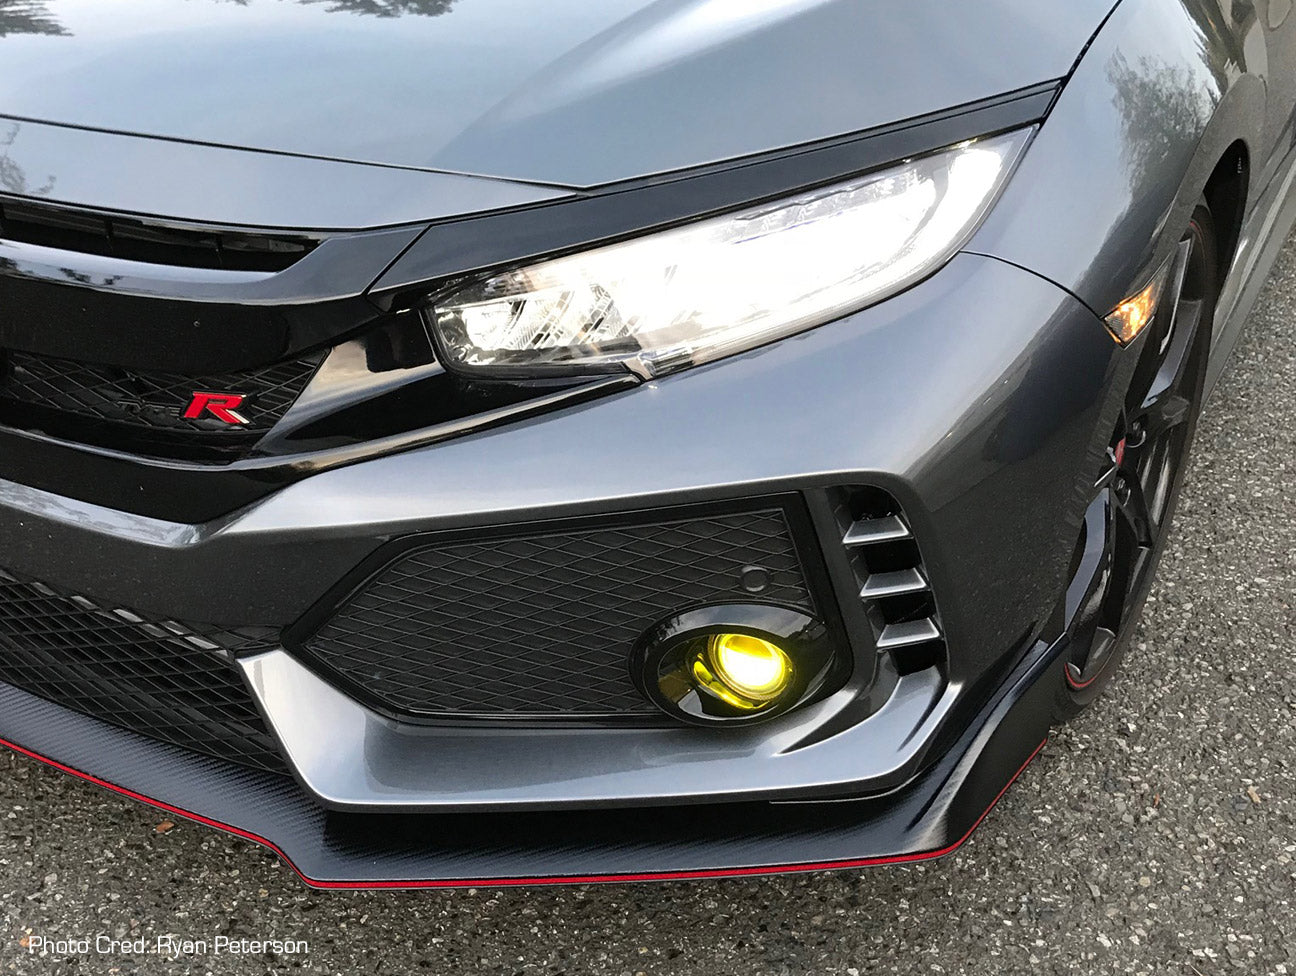 Honda Civic Fog Light Wiring Harness Detailed Schematics Diagram 2012 Engine Led Wire 2016 2017 Type R 04 Si